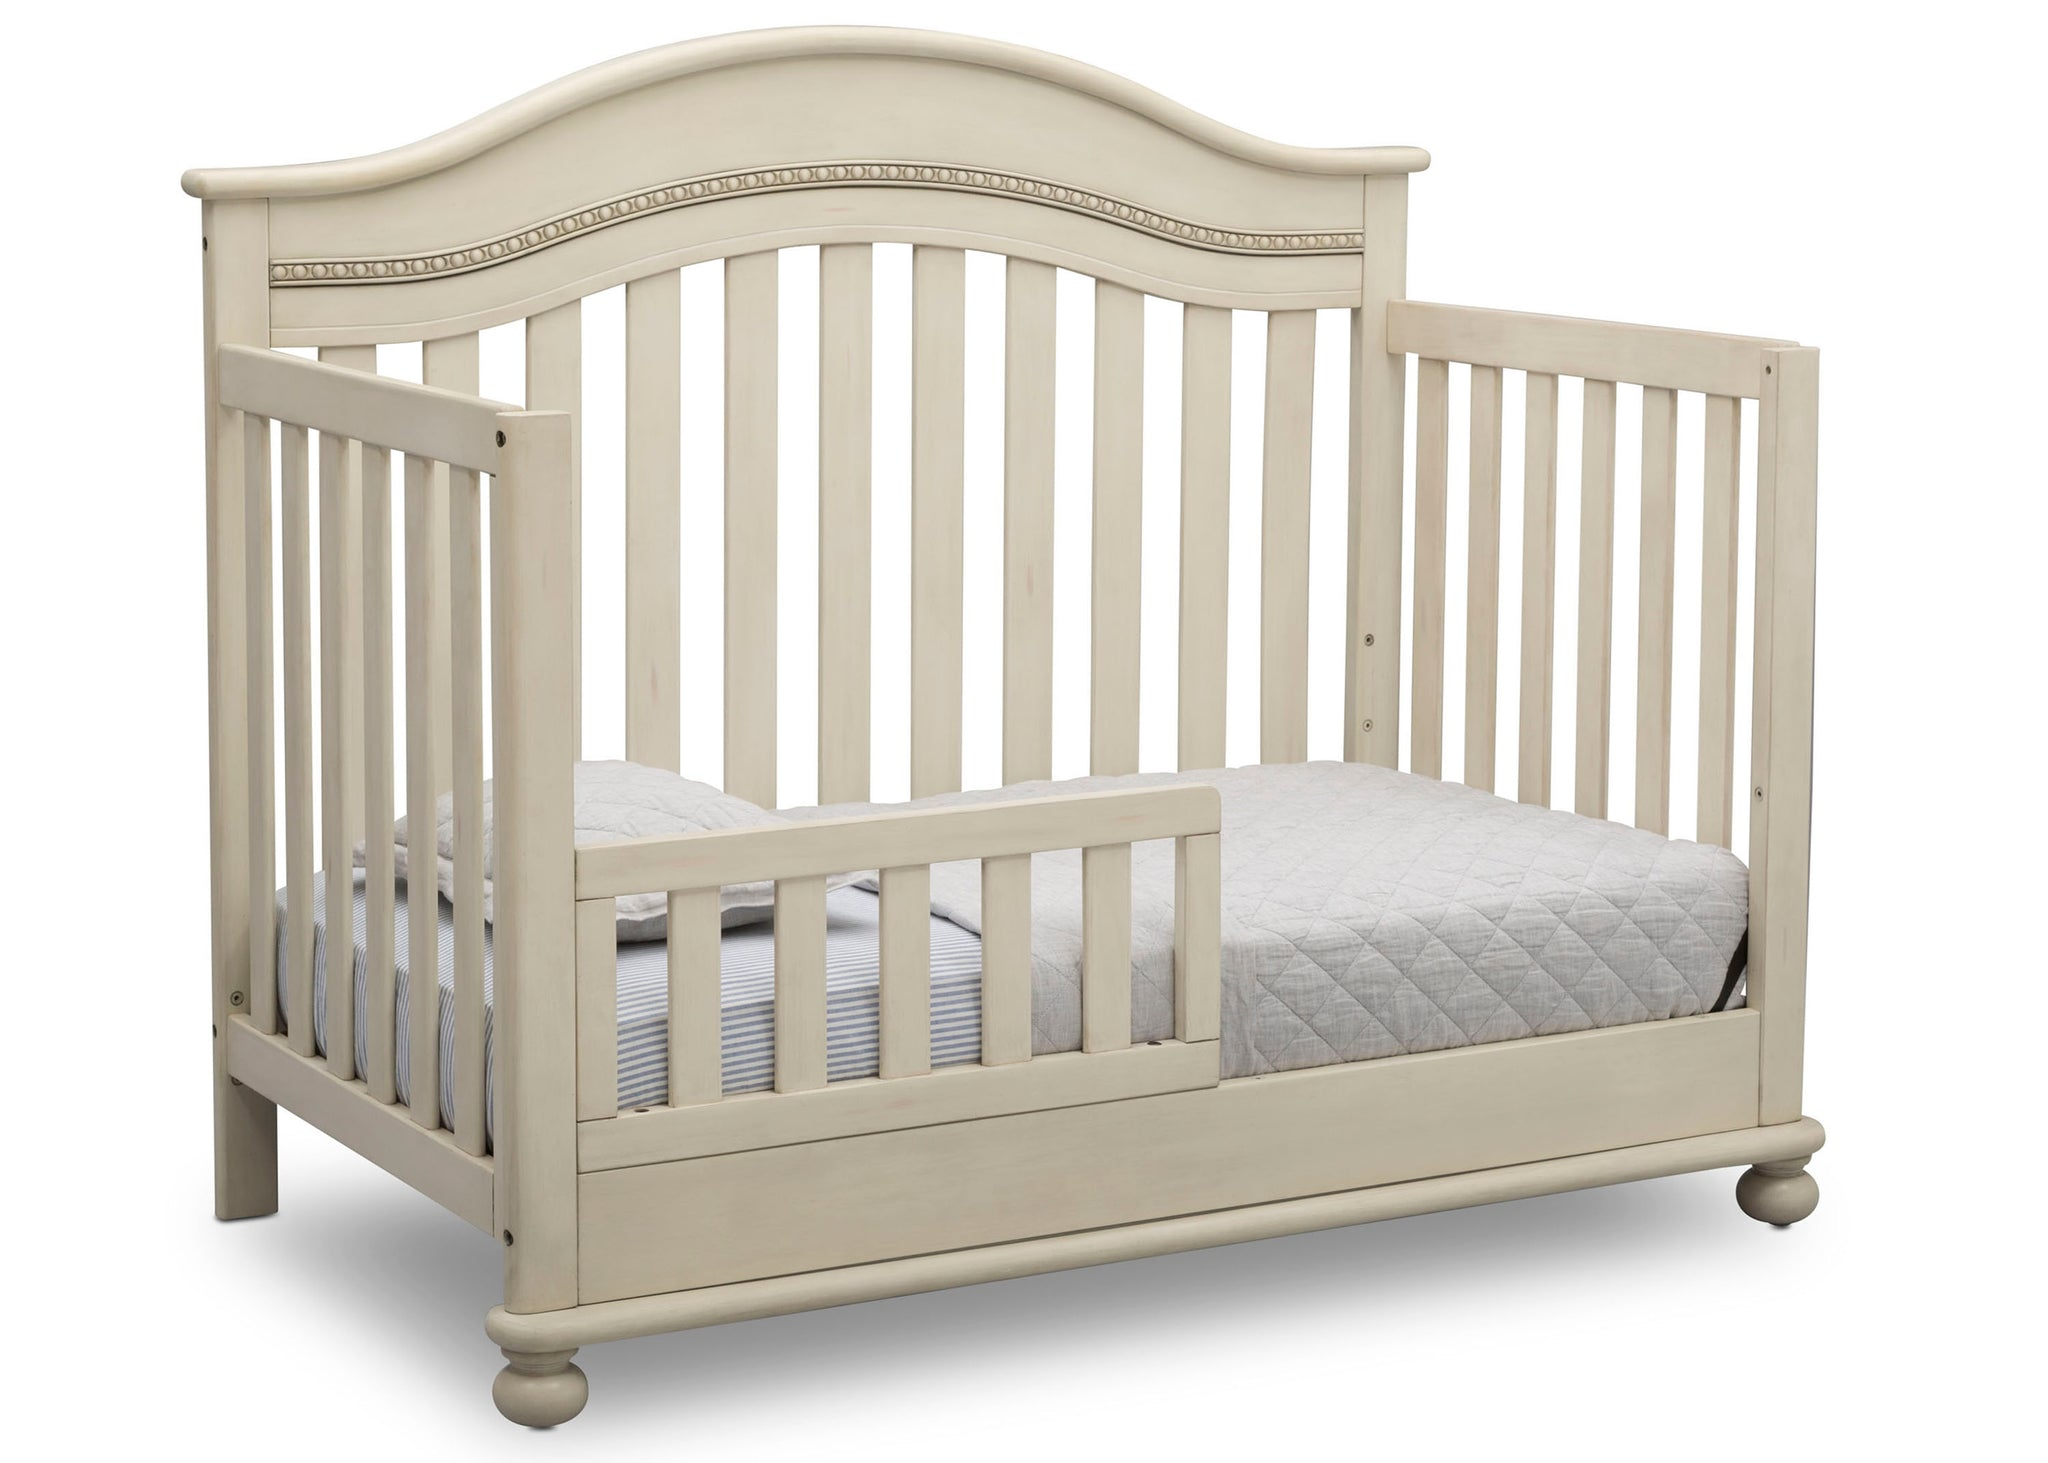 Delta Children Antique White (122) Bristol 4-in-1 Convertible Crib (W337450) Toddler Bed Conversion, a4a